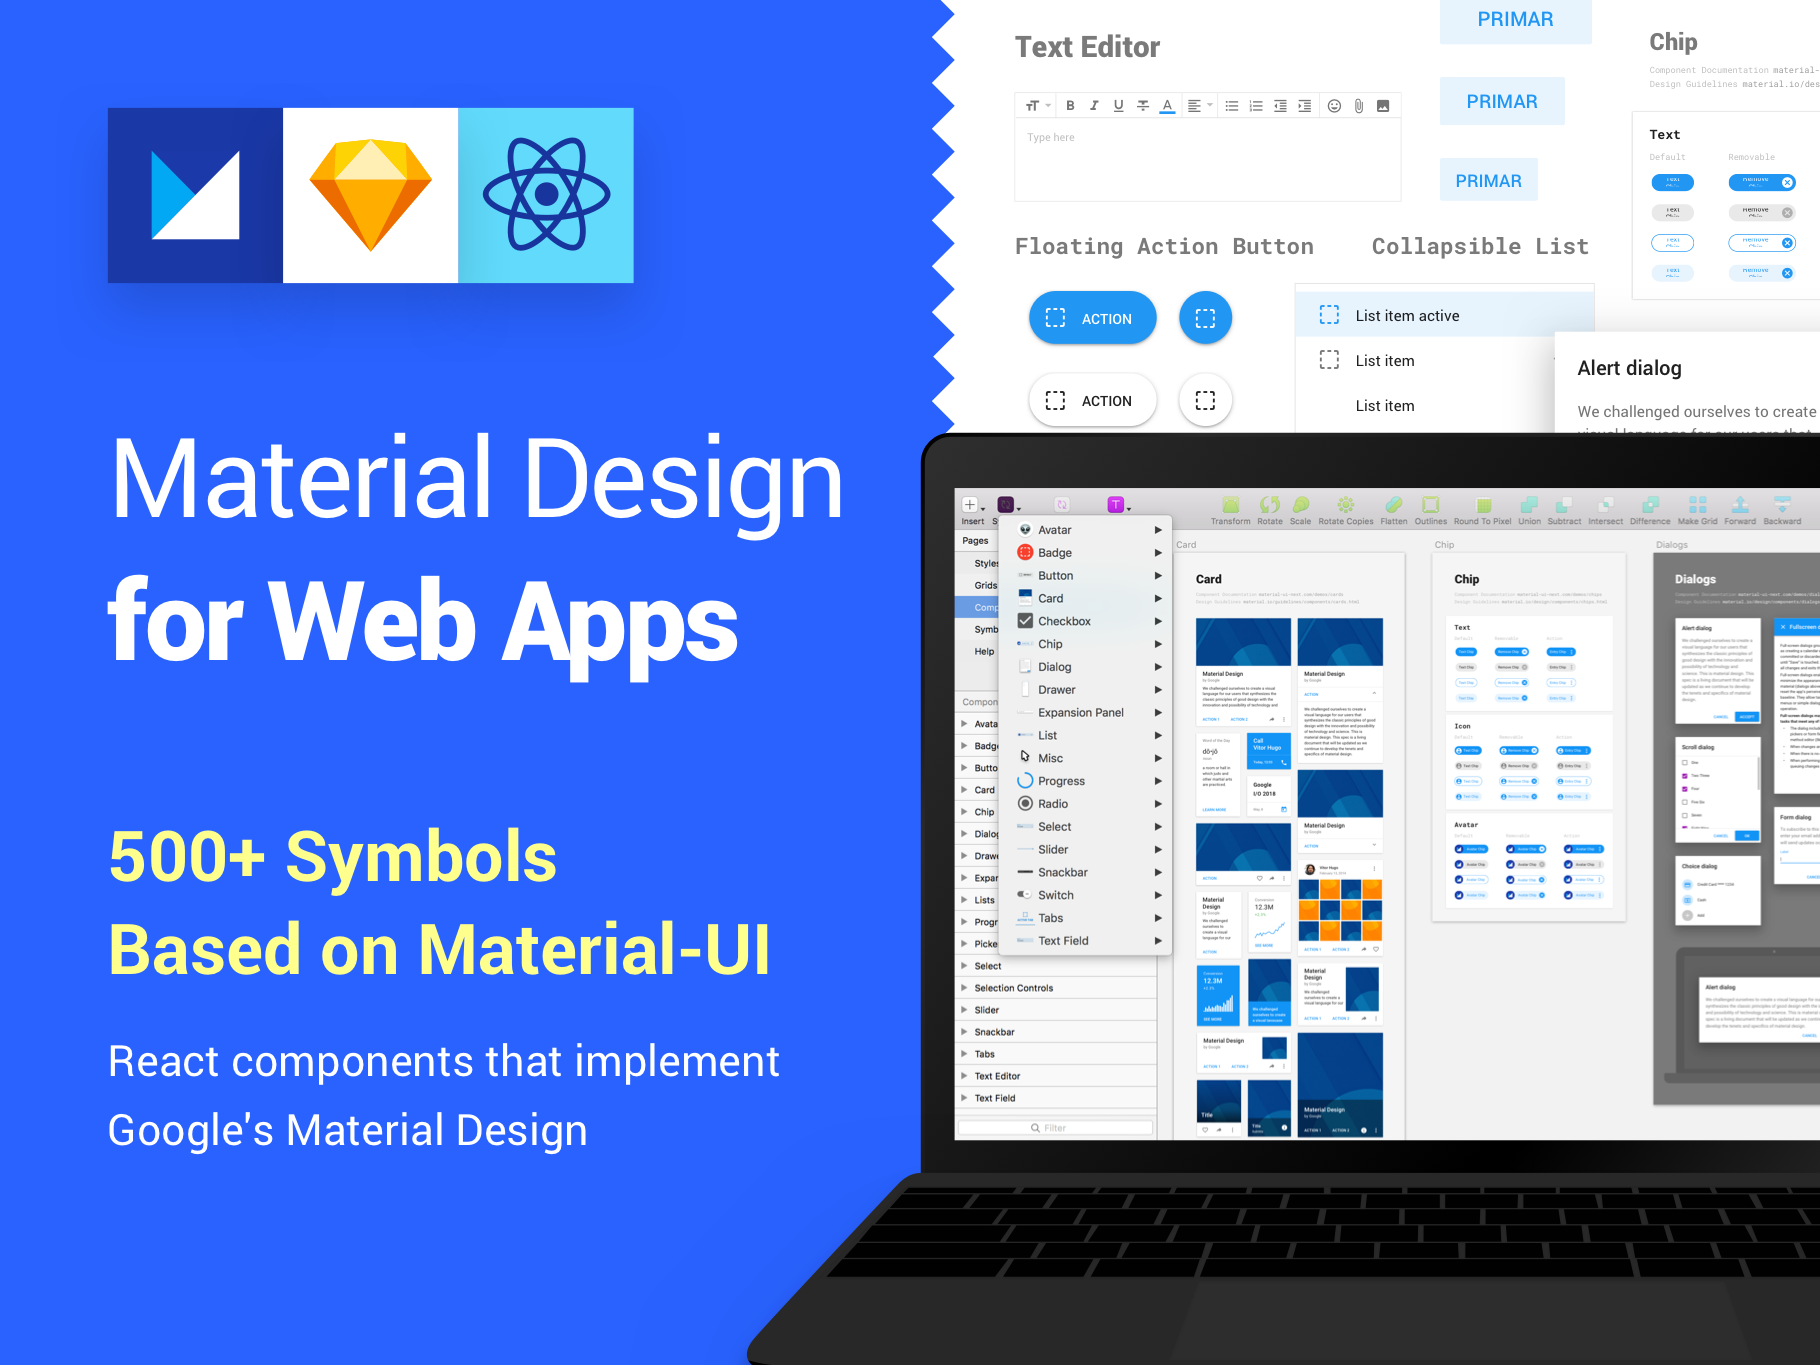 Material Design Kit for Web Apps by Vitor Heinzen on Dribbble